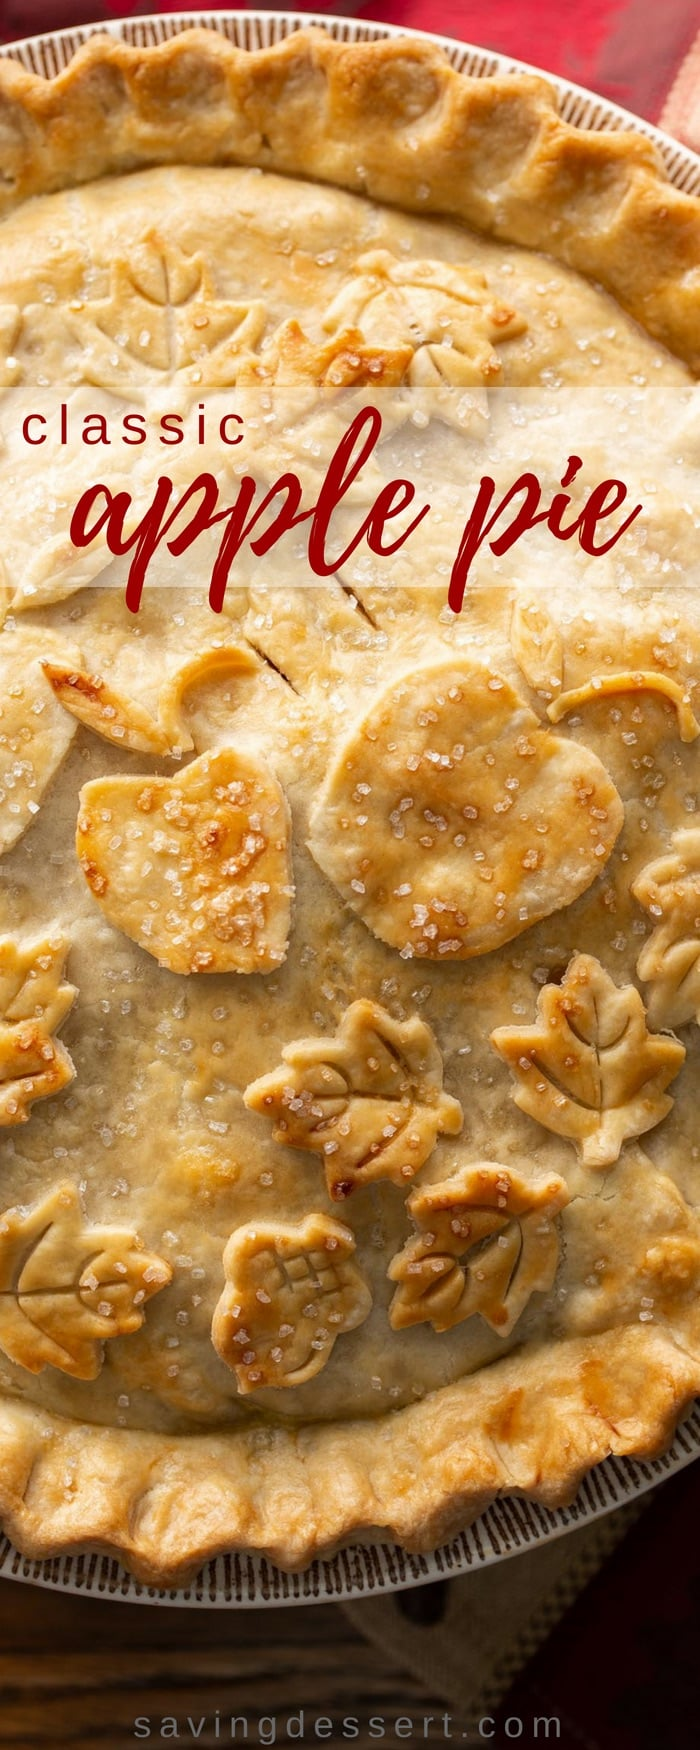 Classic Double Crust Apple Pie Recipe - the filling is made with tart, crisp apples then wrapped in a buttery, flaky pastry dough. Baked until golden brown then served warm with a scoop of ice cream. #applepie #classicapplepie #applepierecipe #pie #appledessert #freshapplepie #savingroomfordessert